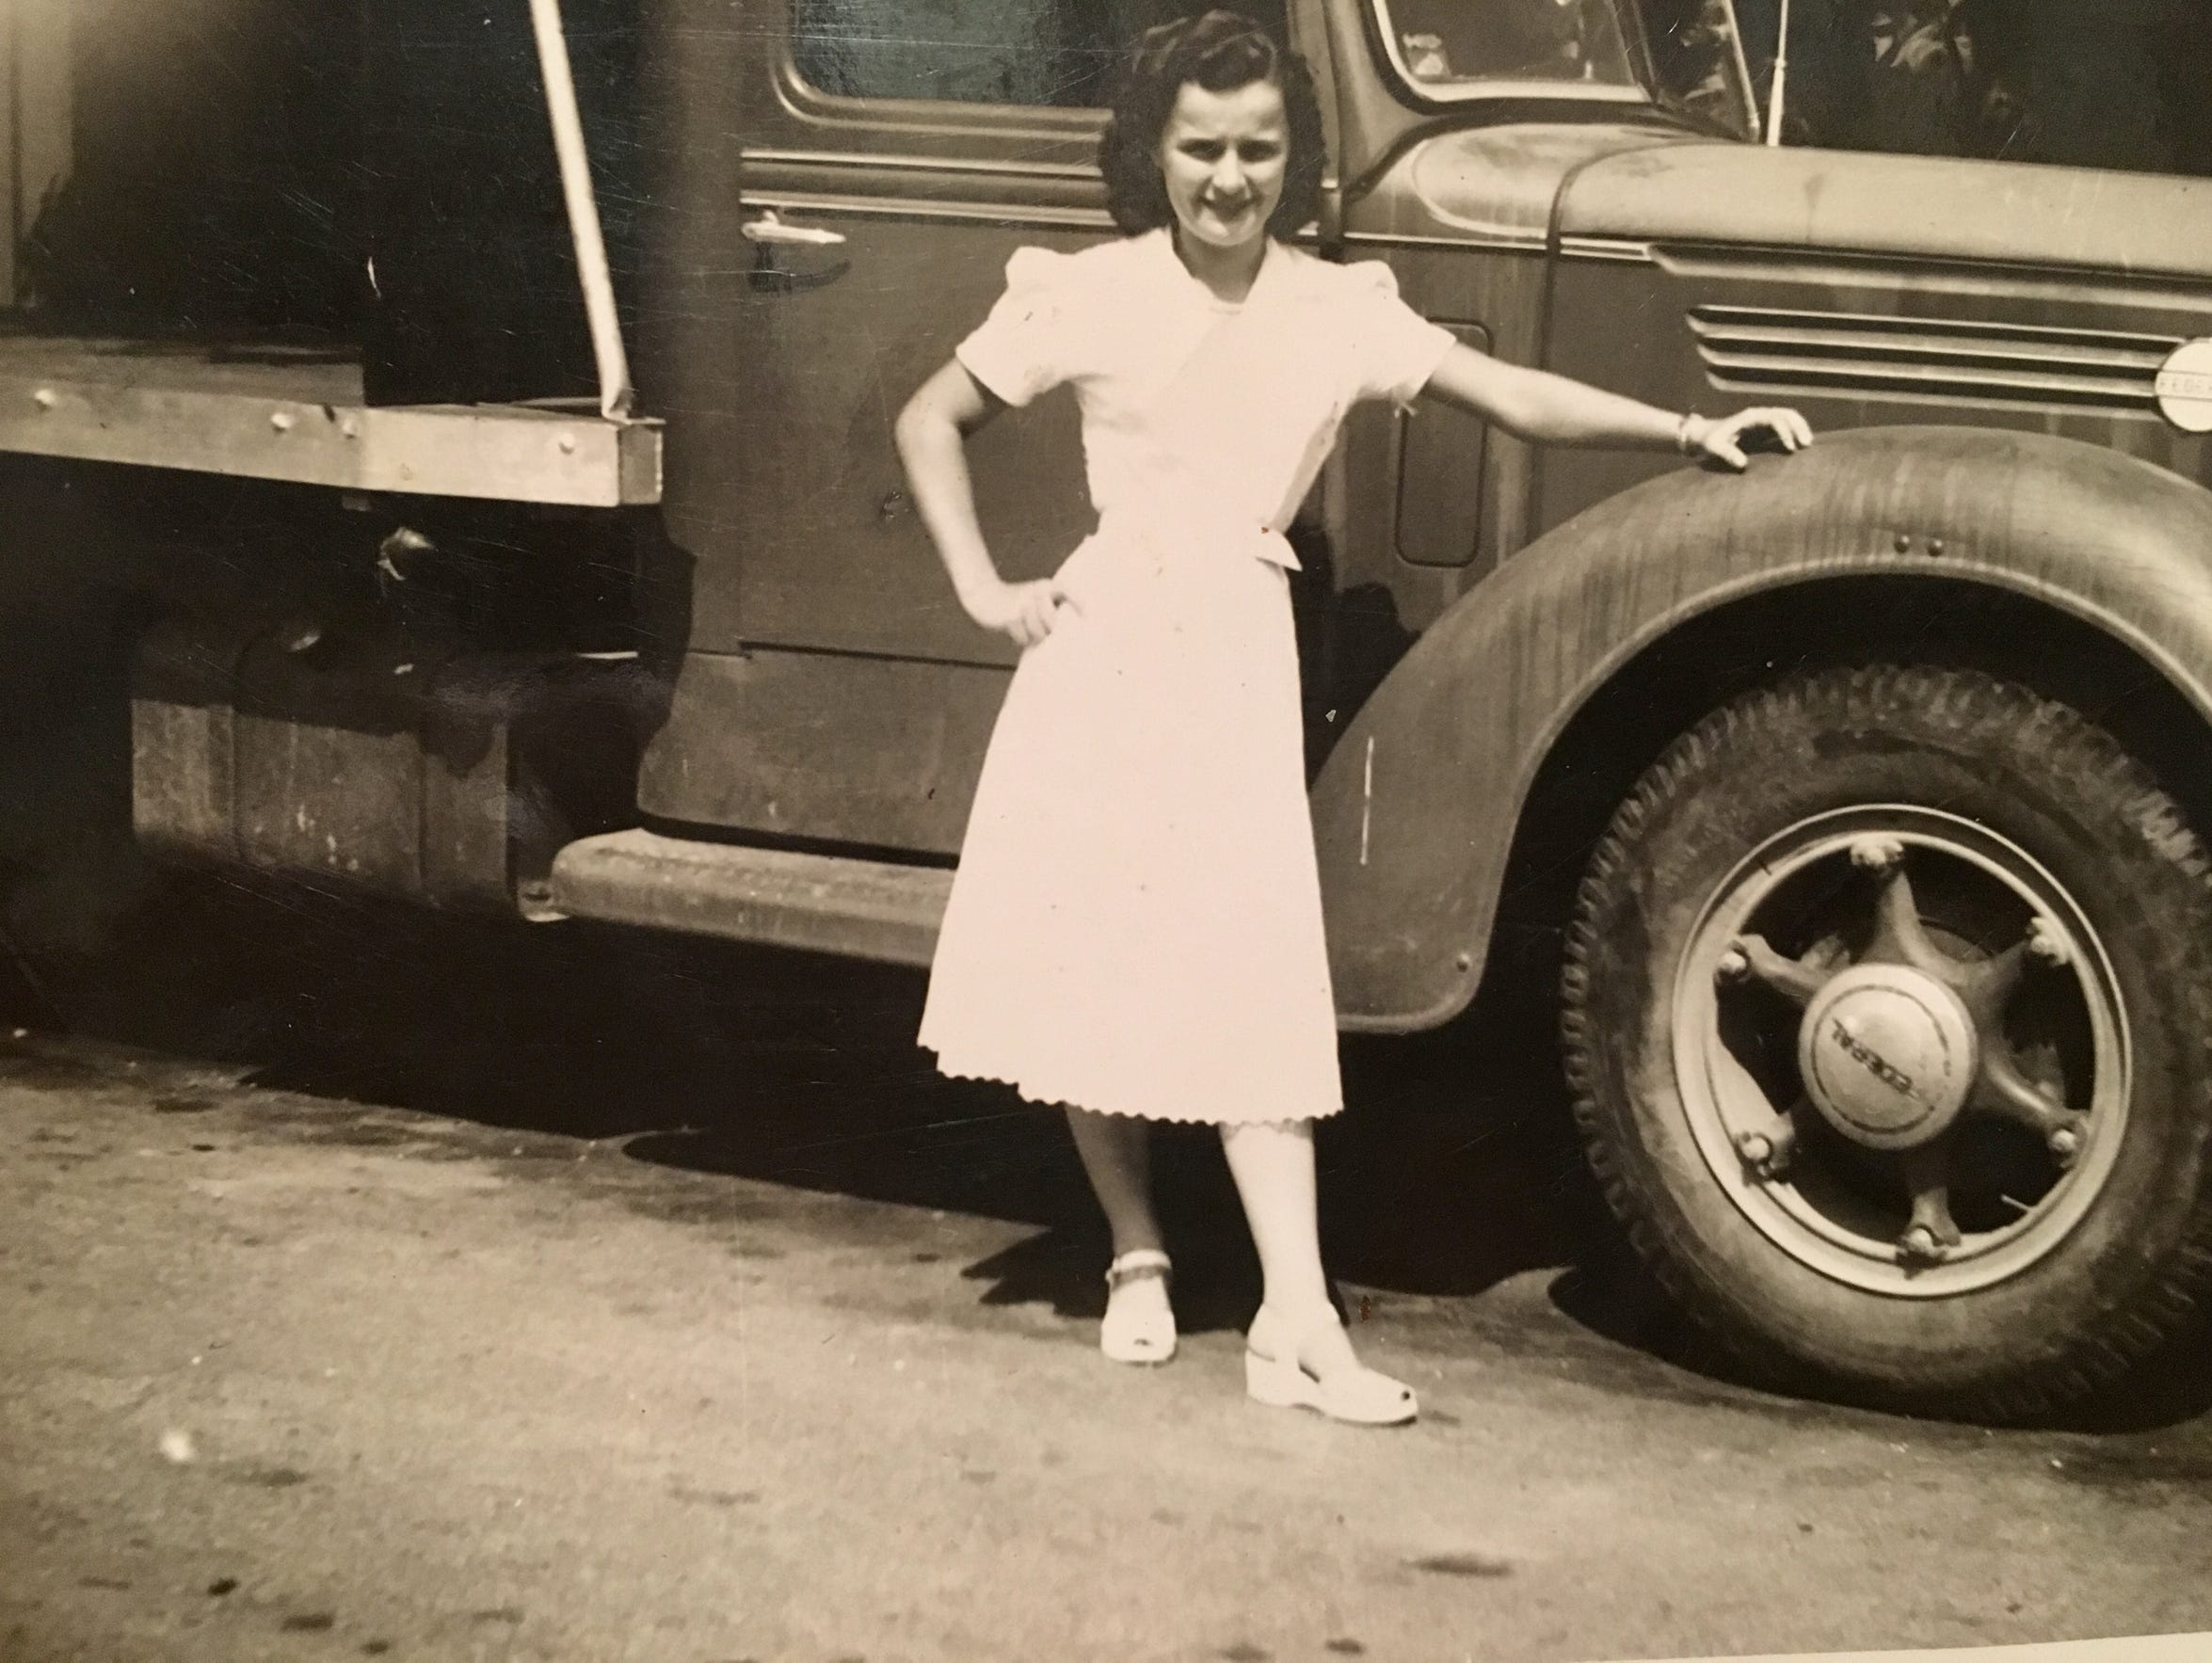 Helen Harney, a teenager in the late 1940s, grew up on a farm in north central Kentucky.